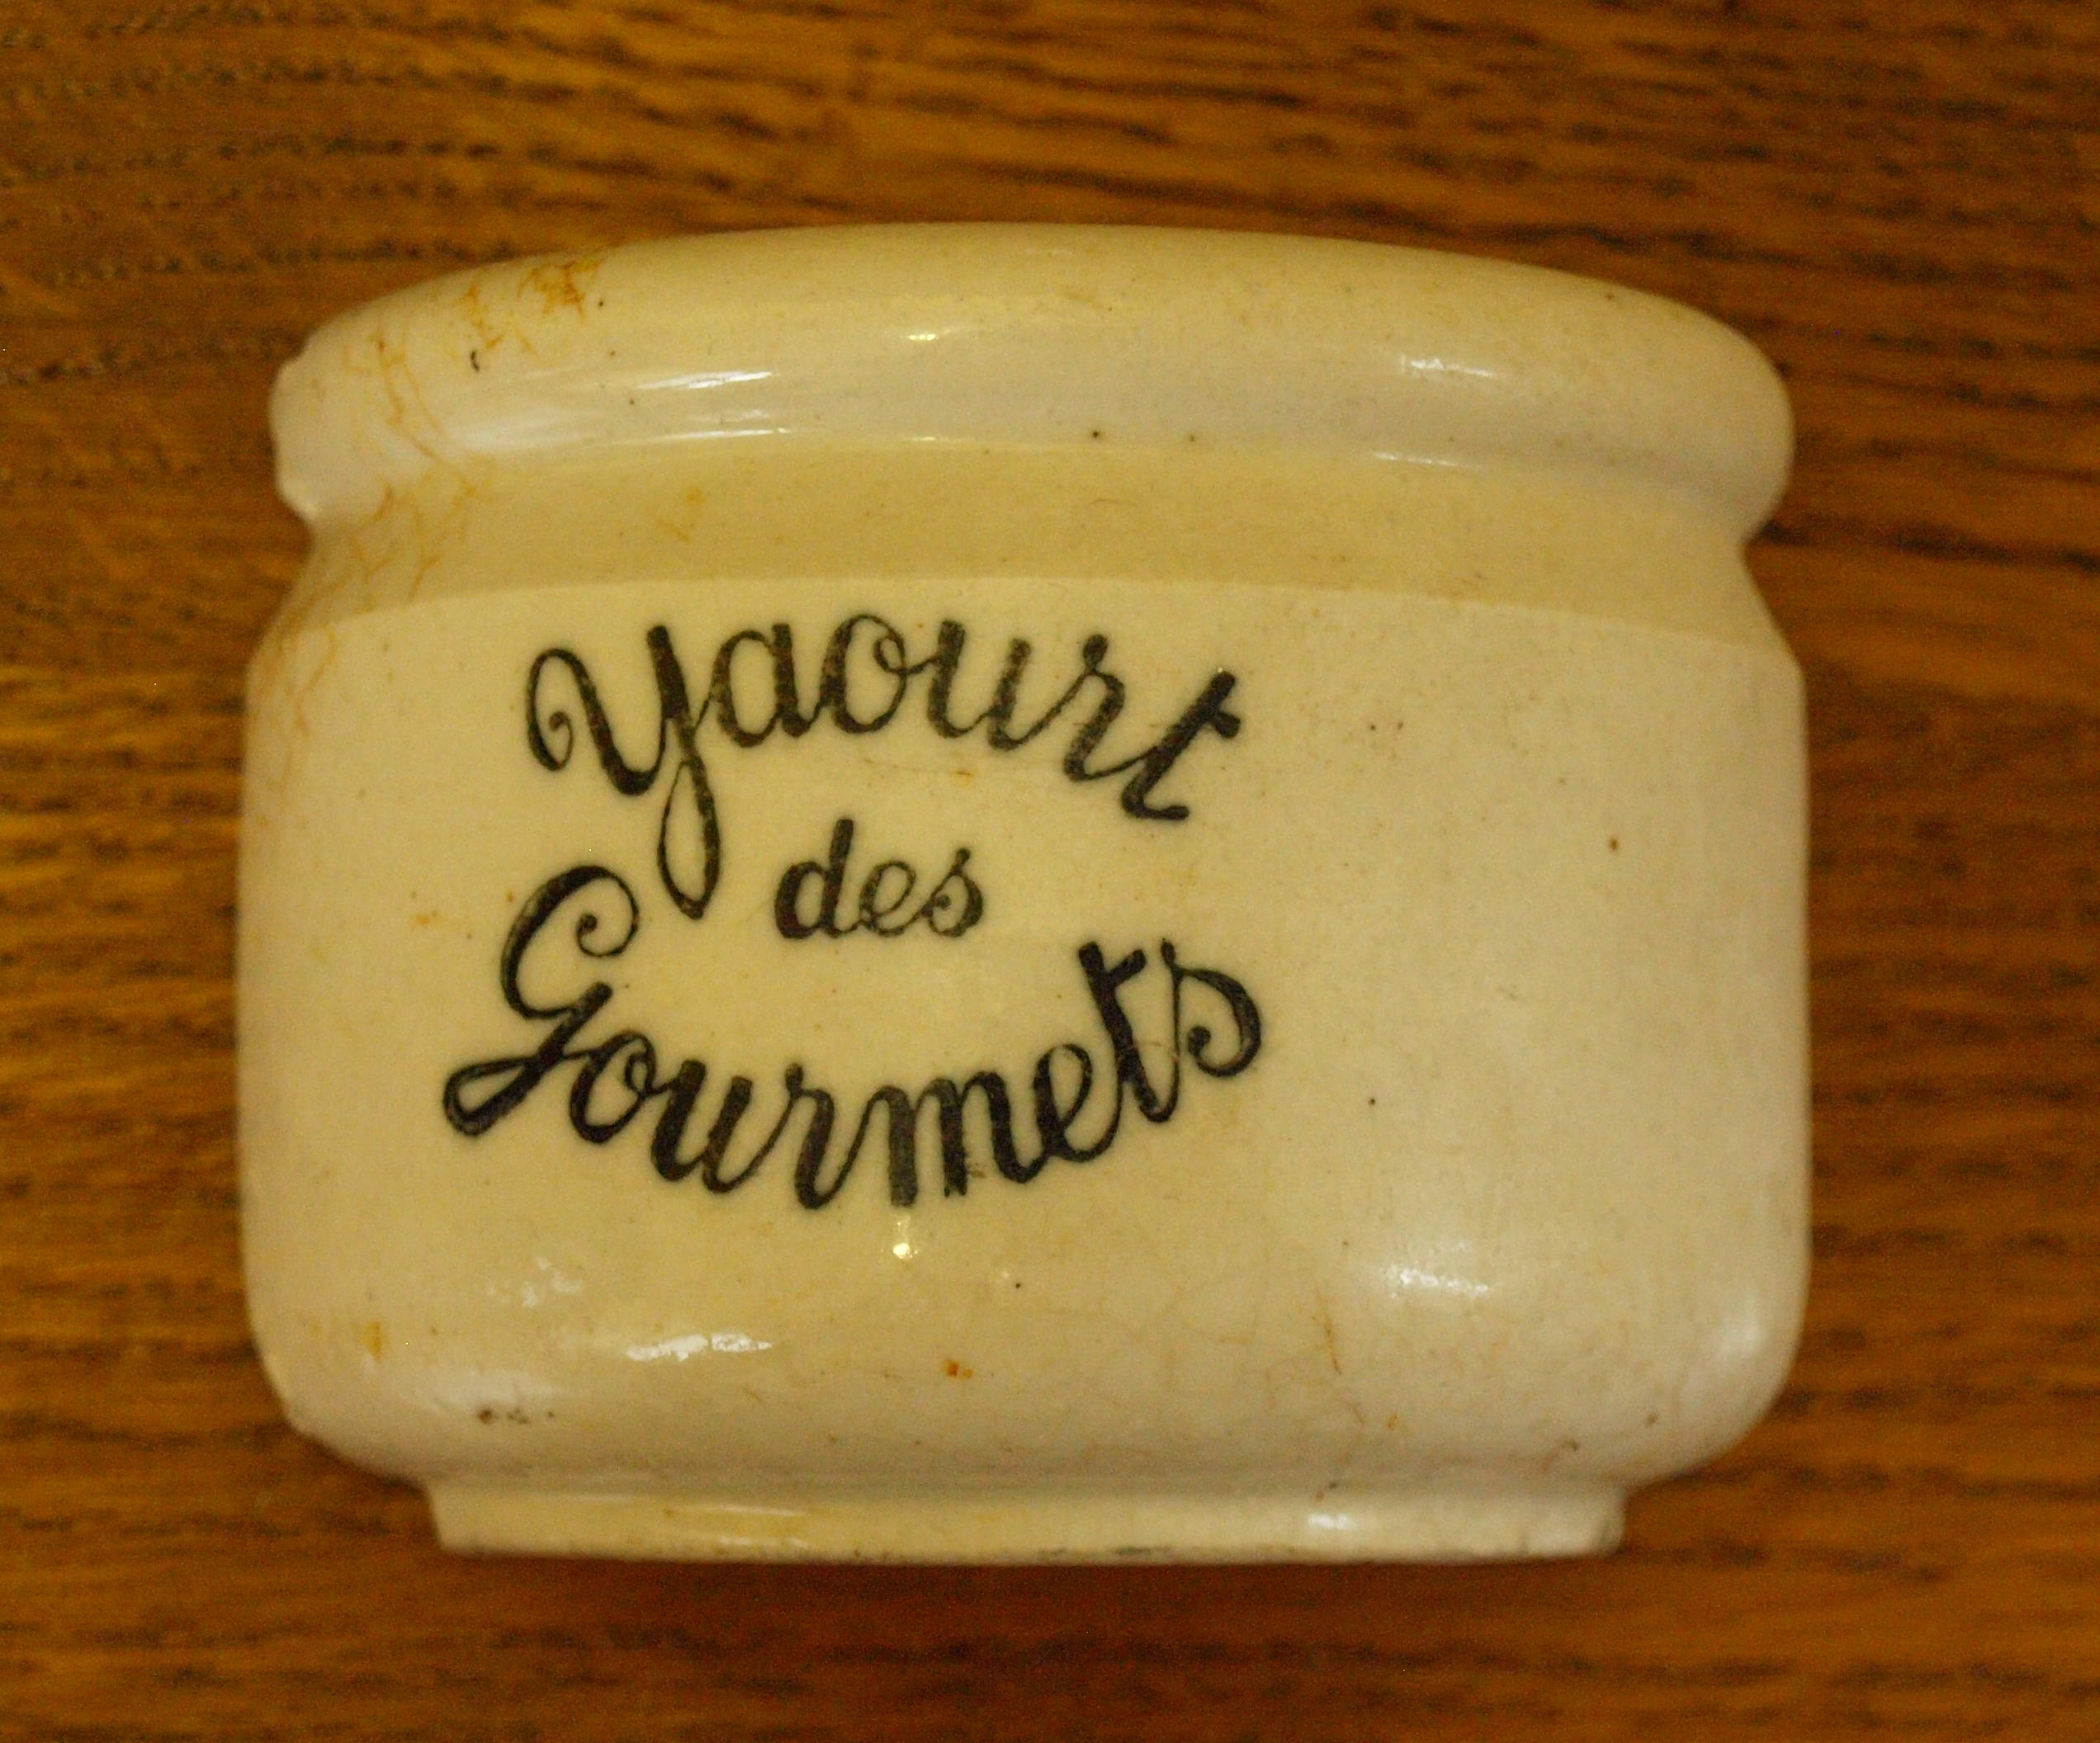 http://upload.wikimedia.org/wikipedia/commons/c/c7/Pot_fa%C3%AFence-yaourt_des_Gourmets.jpg